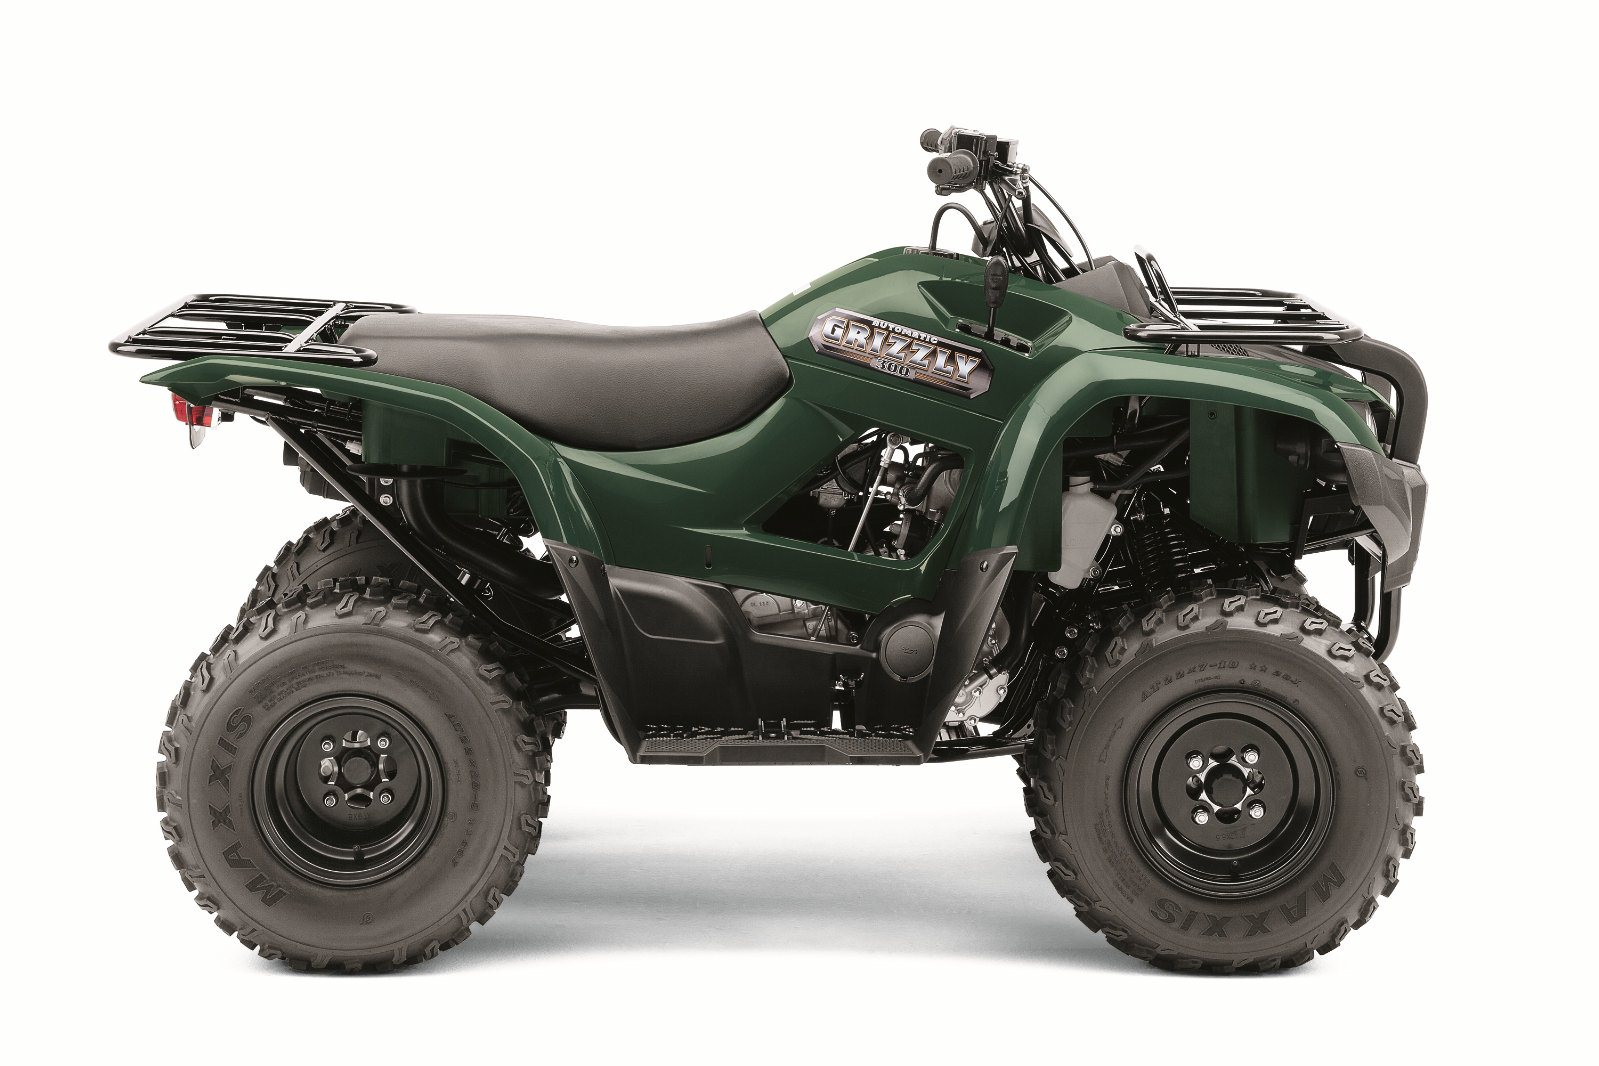 Wiring Diagram 2011 450 Yamaha Grizzly Electrical Diagrams 2012 300 Search For U2022 Rhino 660